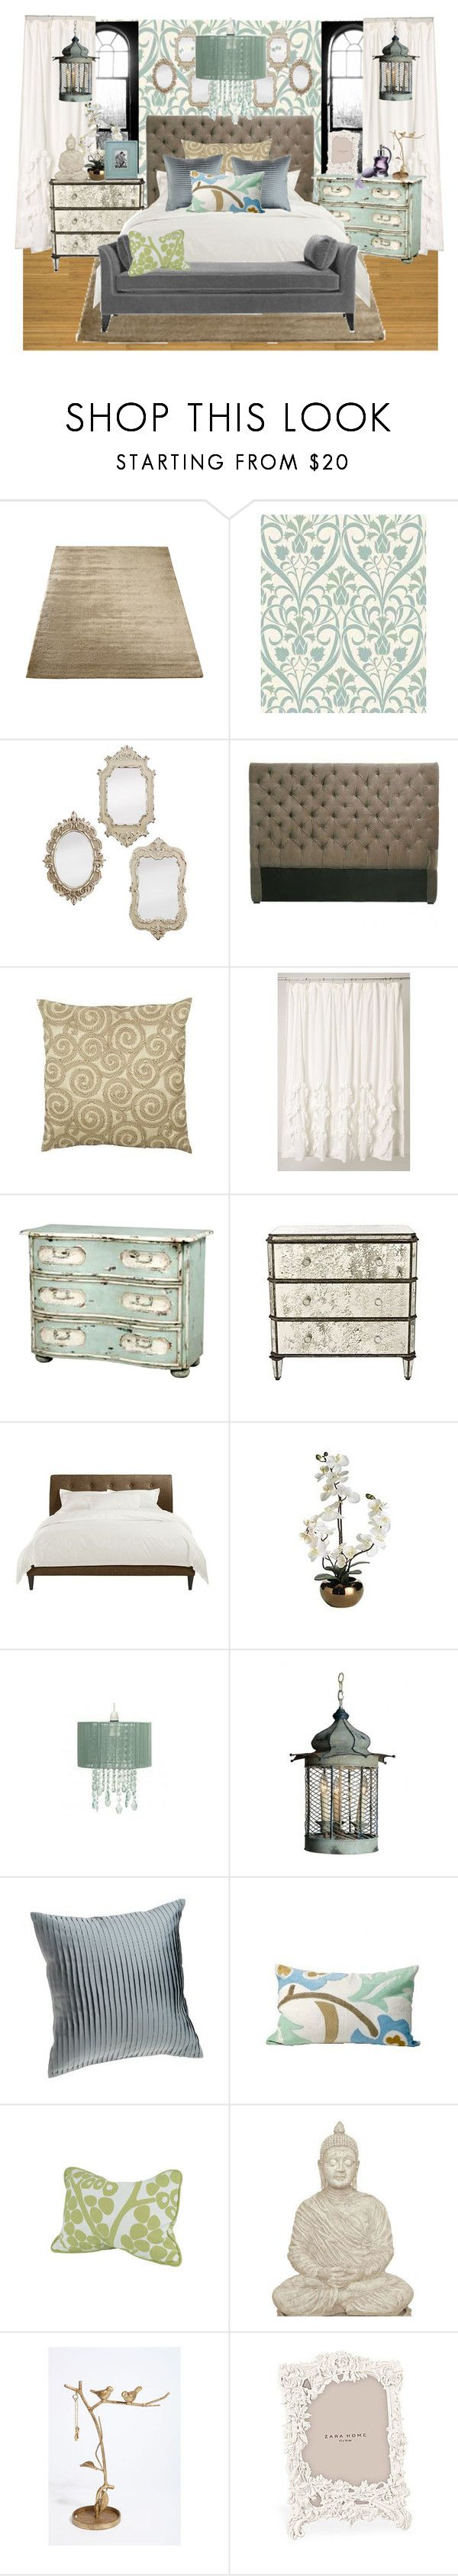 """""""Antique Bedroom"""" by kiley1 ❤ liked on Polyvore featuring interior, interiors, interior design, home, home decor, interior decorating, CO, CHESTERFIELD, Anthropologie and Pier 1 Imports"""